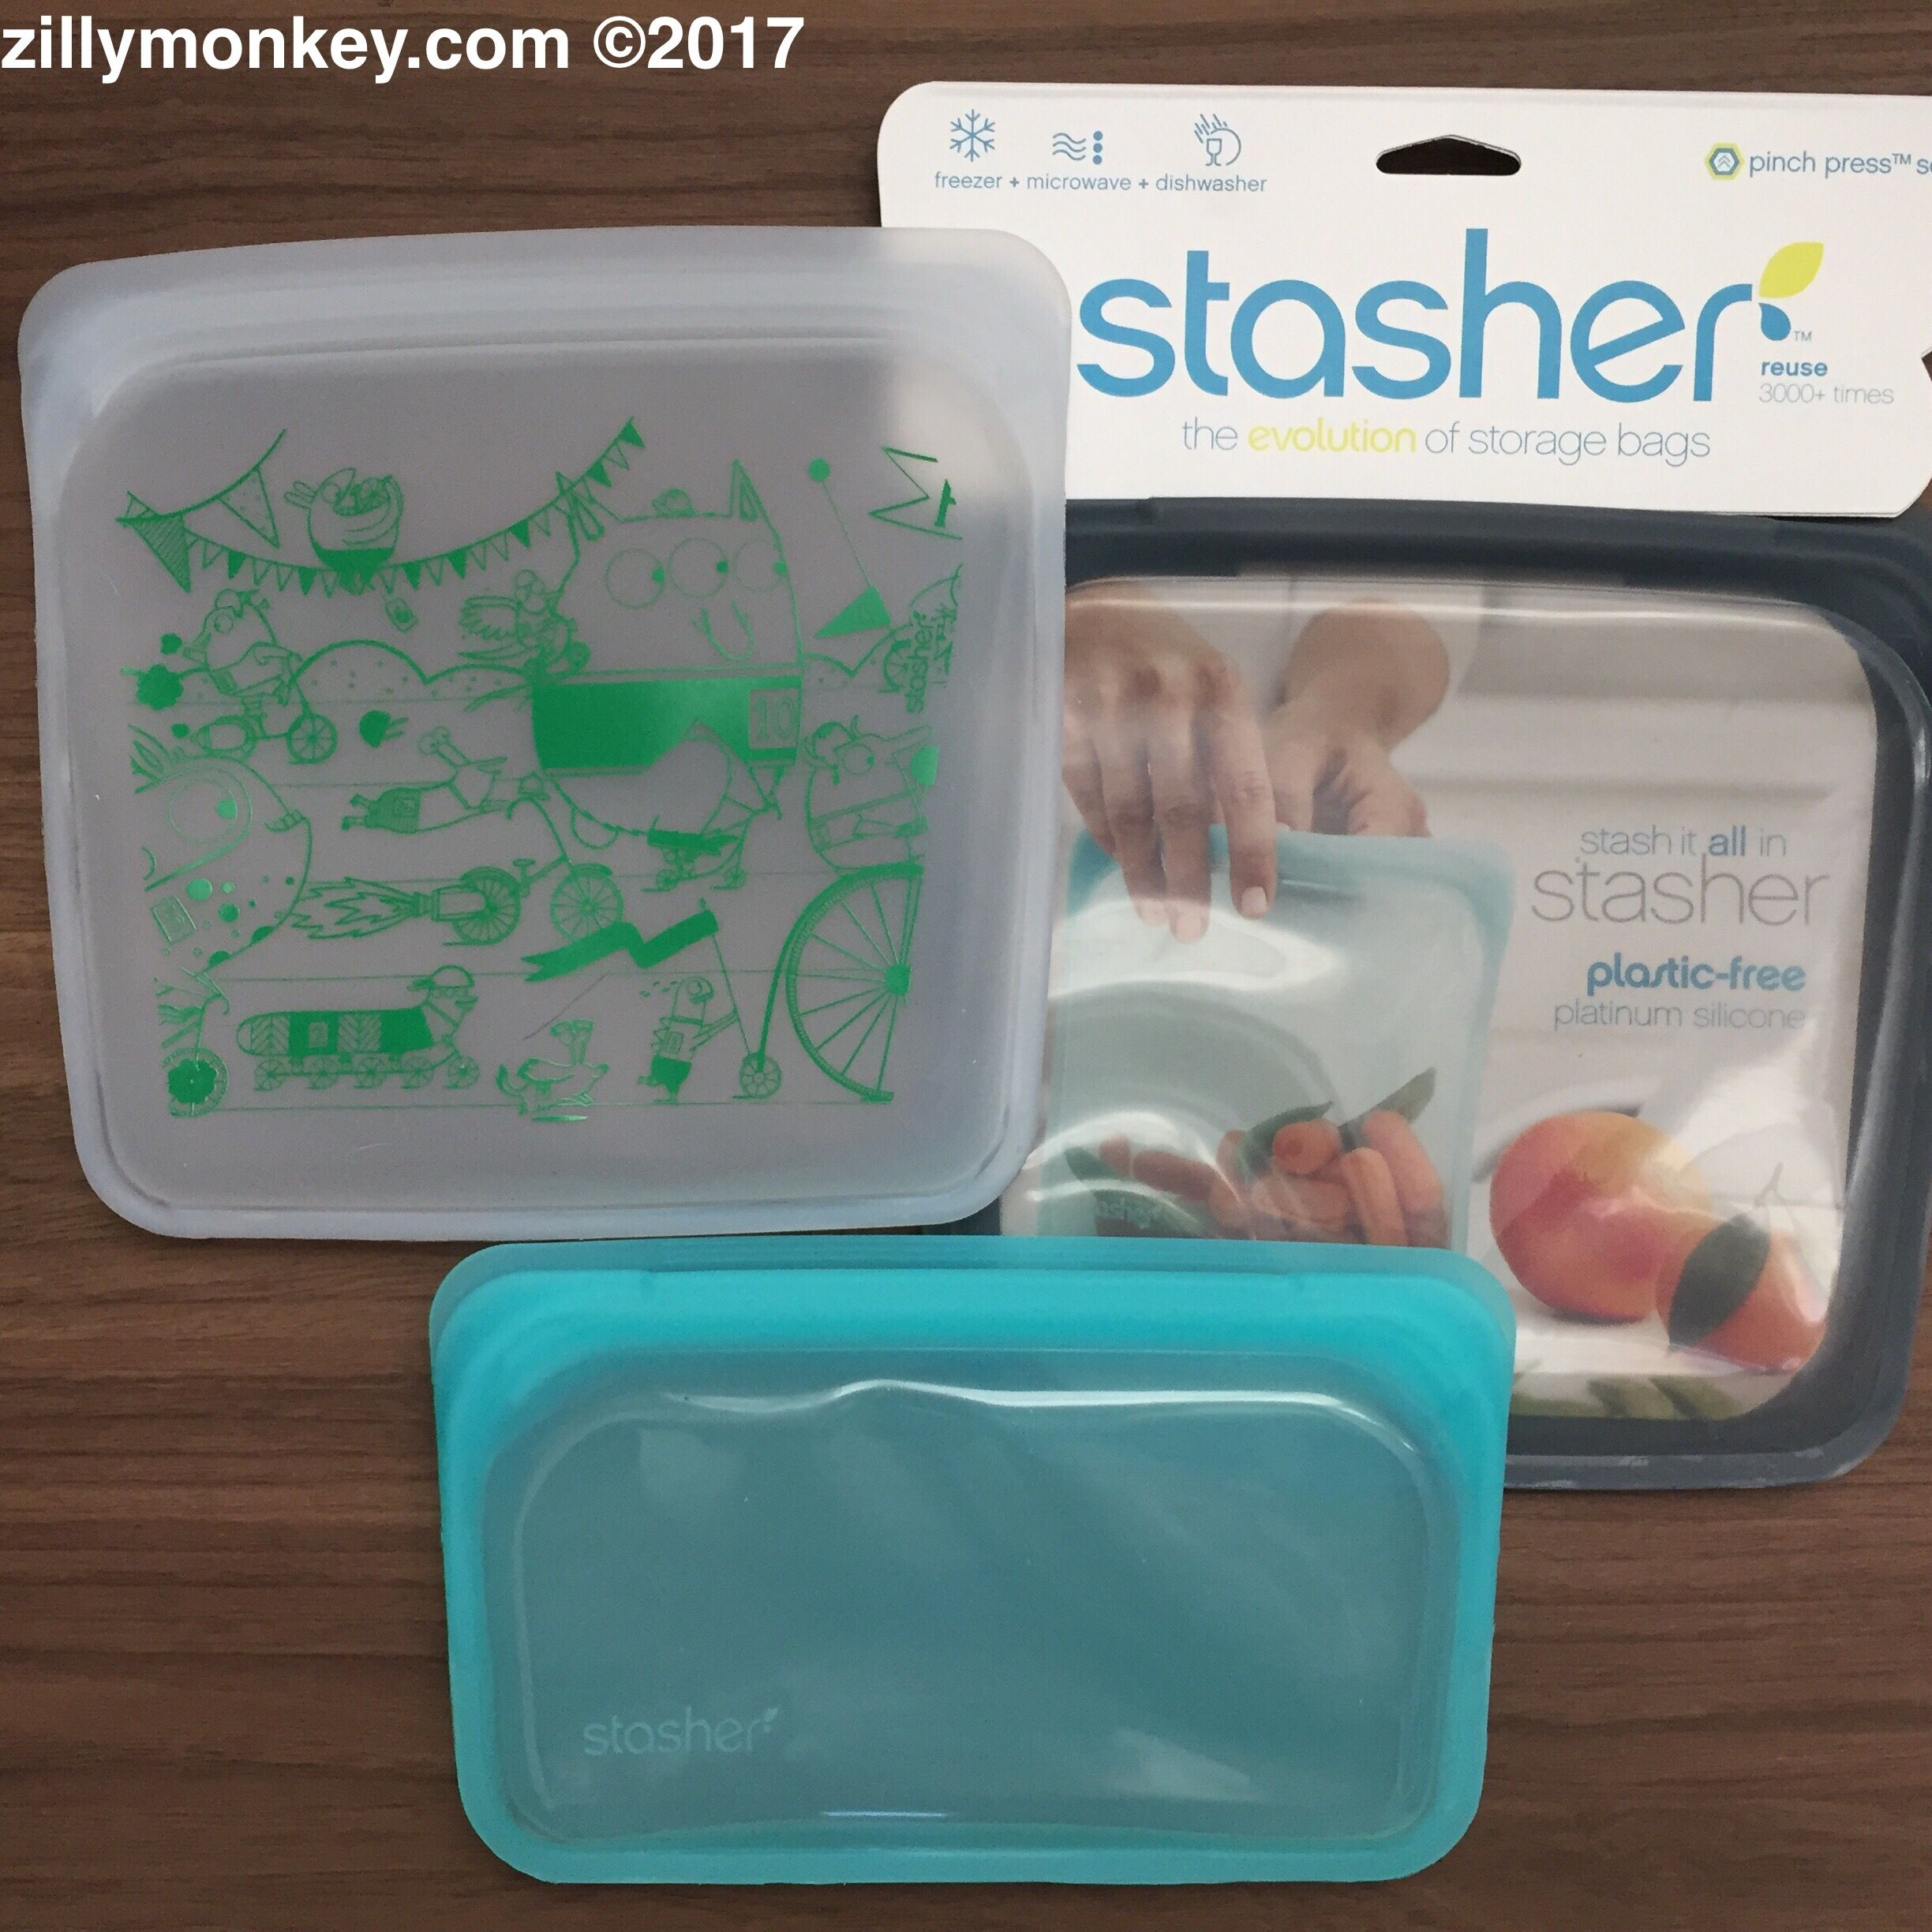 Save No More Throwing Away Plastic Bags Meet Stasher Reuse 3000 Times Plastic Free 100 Platinum Silicon Food Saf Stasher Safe Food Bag Storage